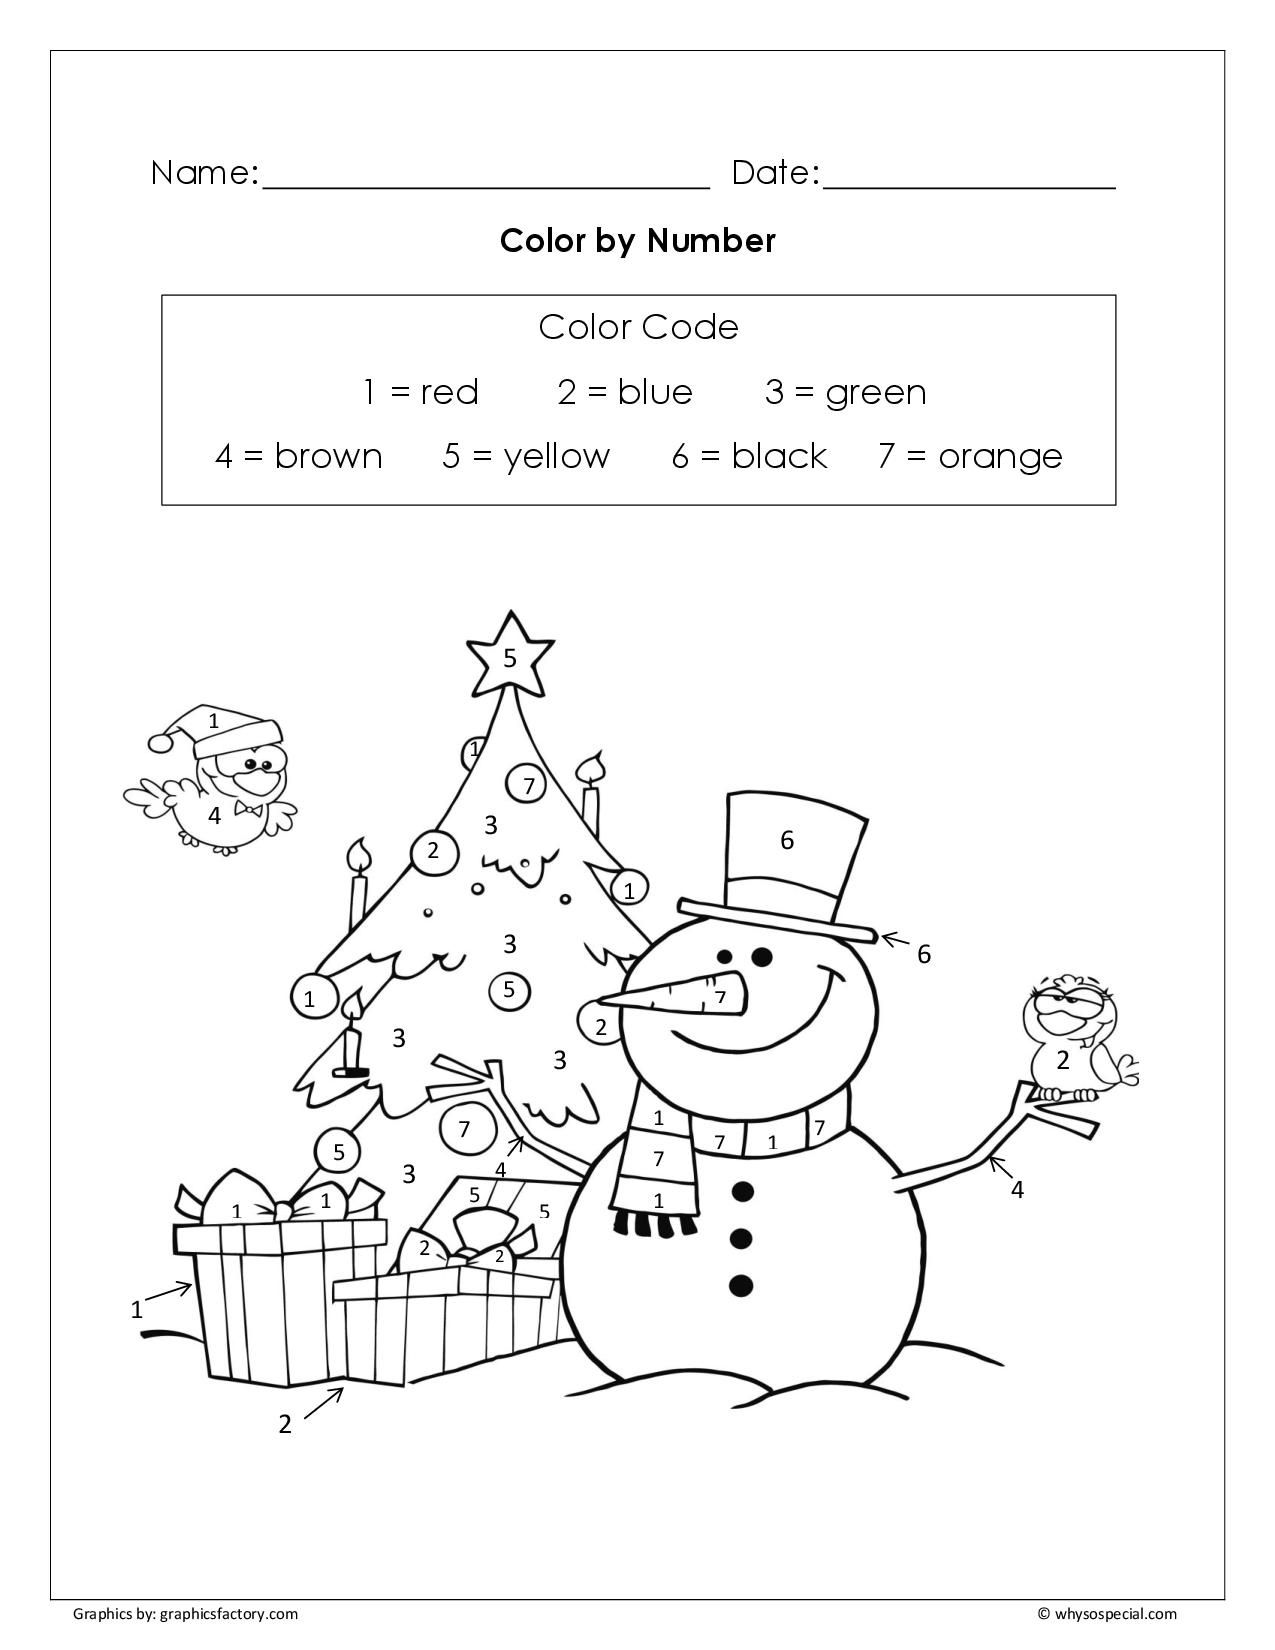 color by numbers free worksheets - Căutare Google | Matematică ...